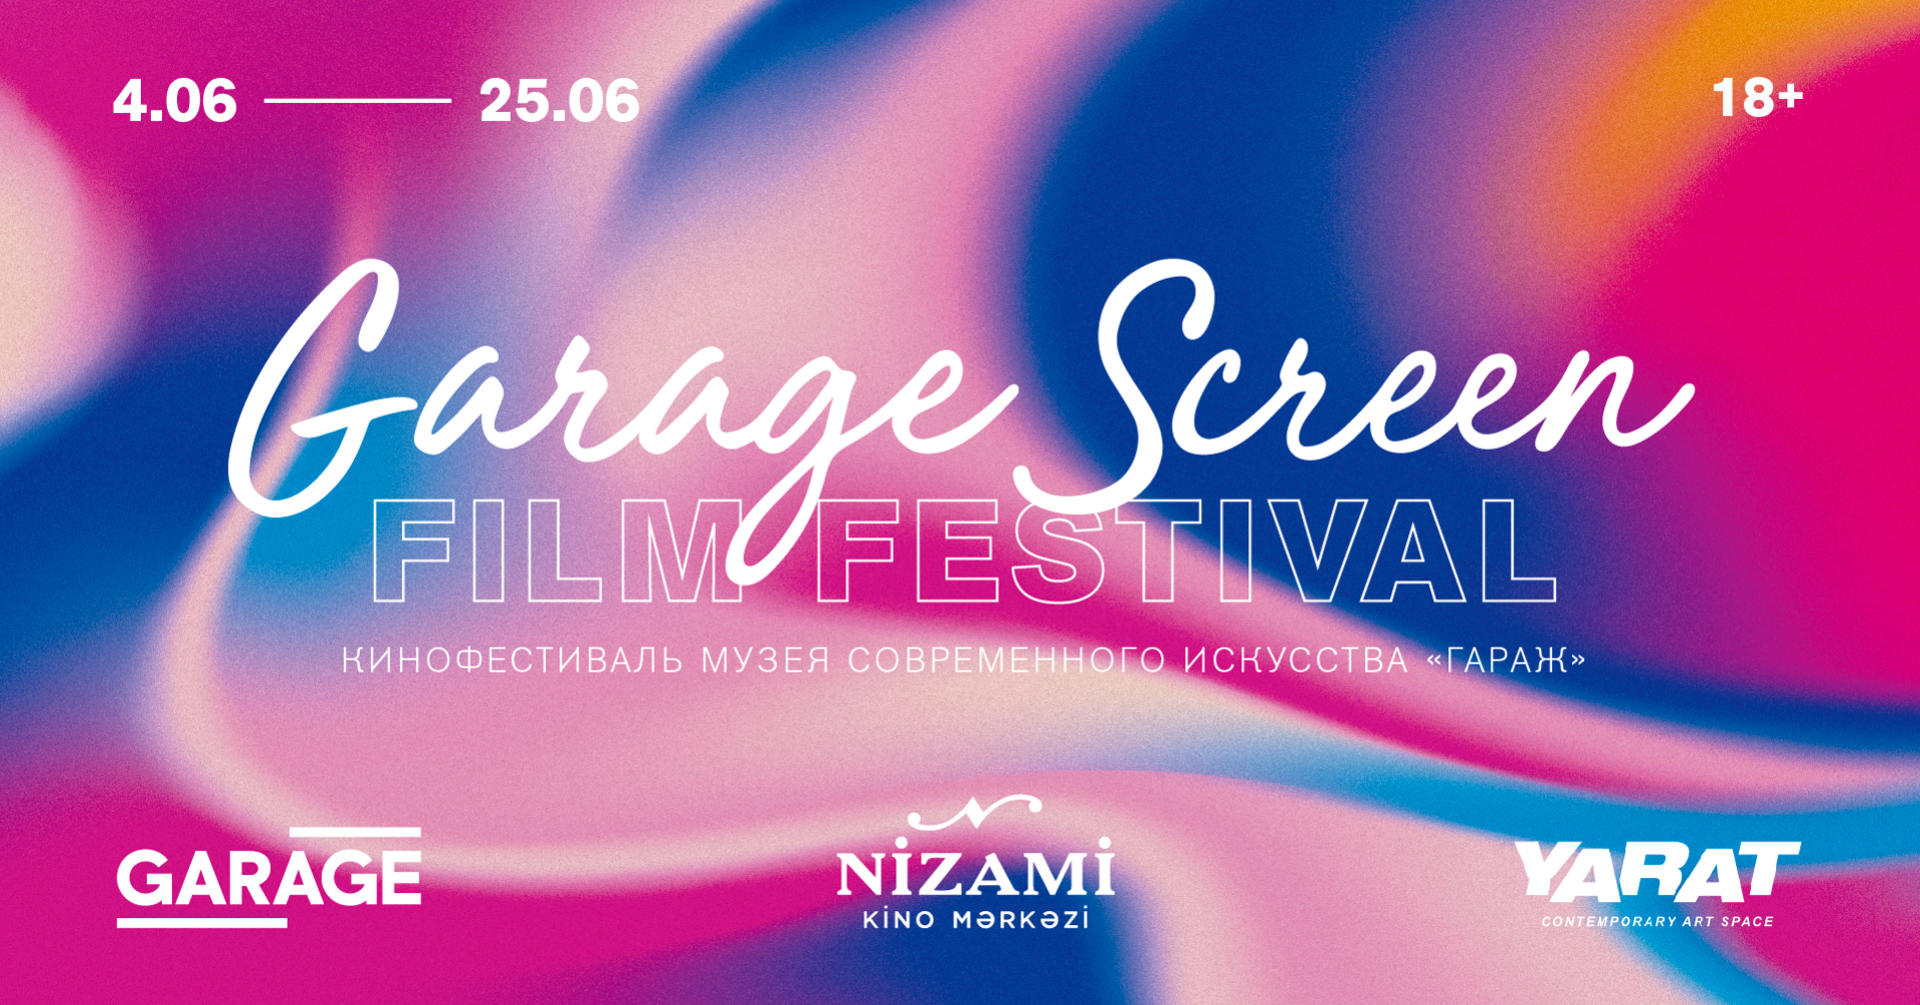 В Баку пройдет Garage Screen Film Festival (ФОТО)